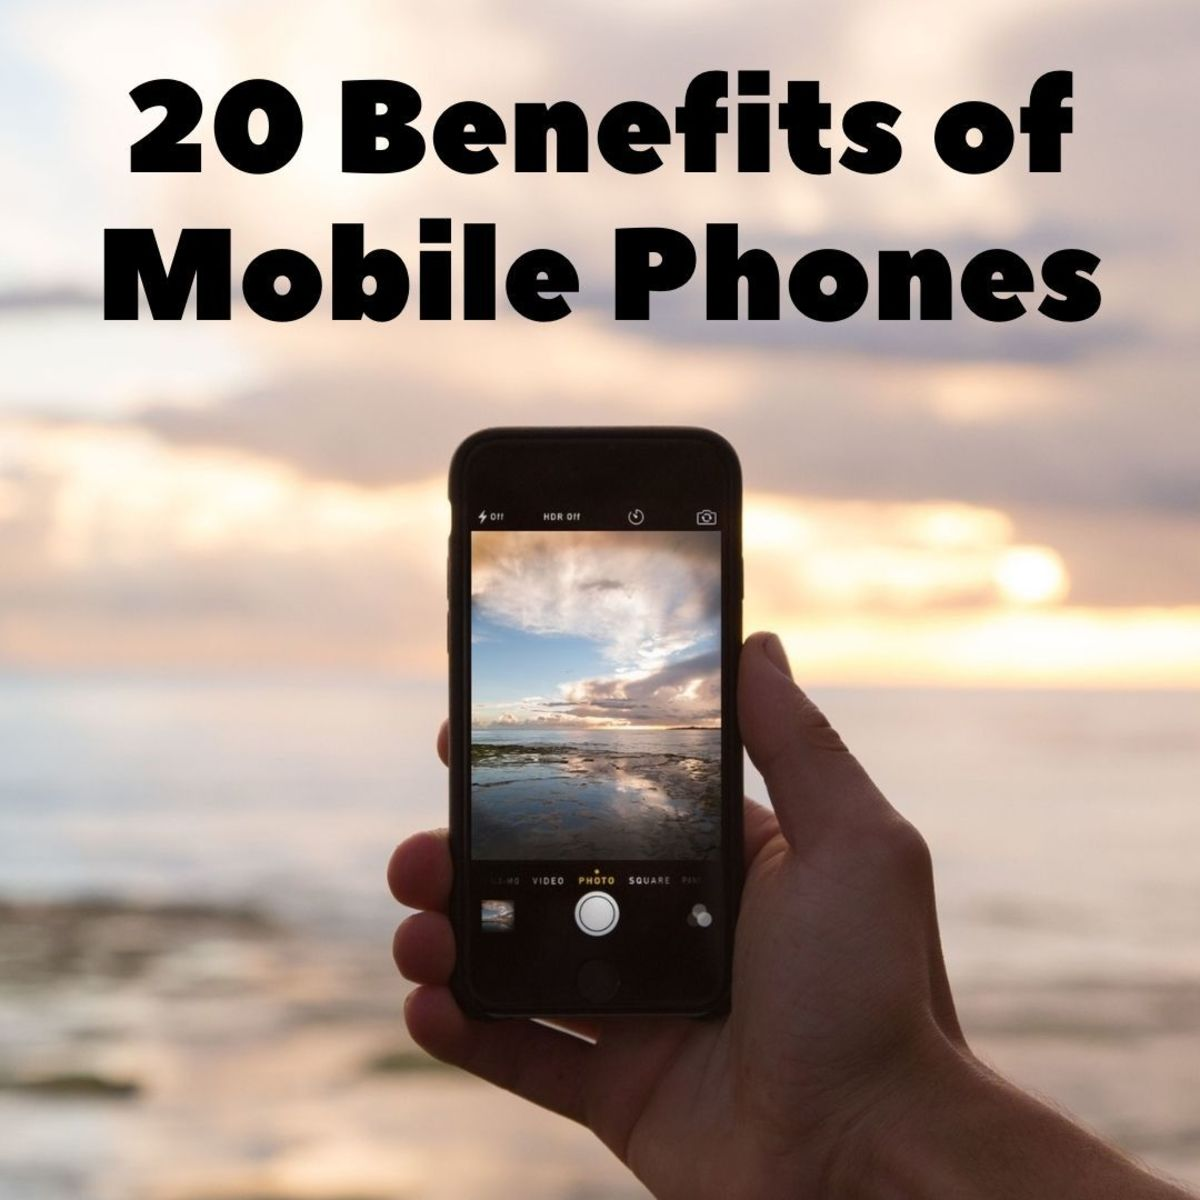 Mobile phones (also known as cell phones) have radically altered the way that we work, socialize, organize, and play. Although there are definitely some negatives, there have also been many benefits. Read on for the main advantages of mobile phones.